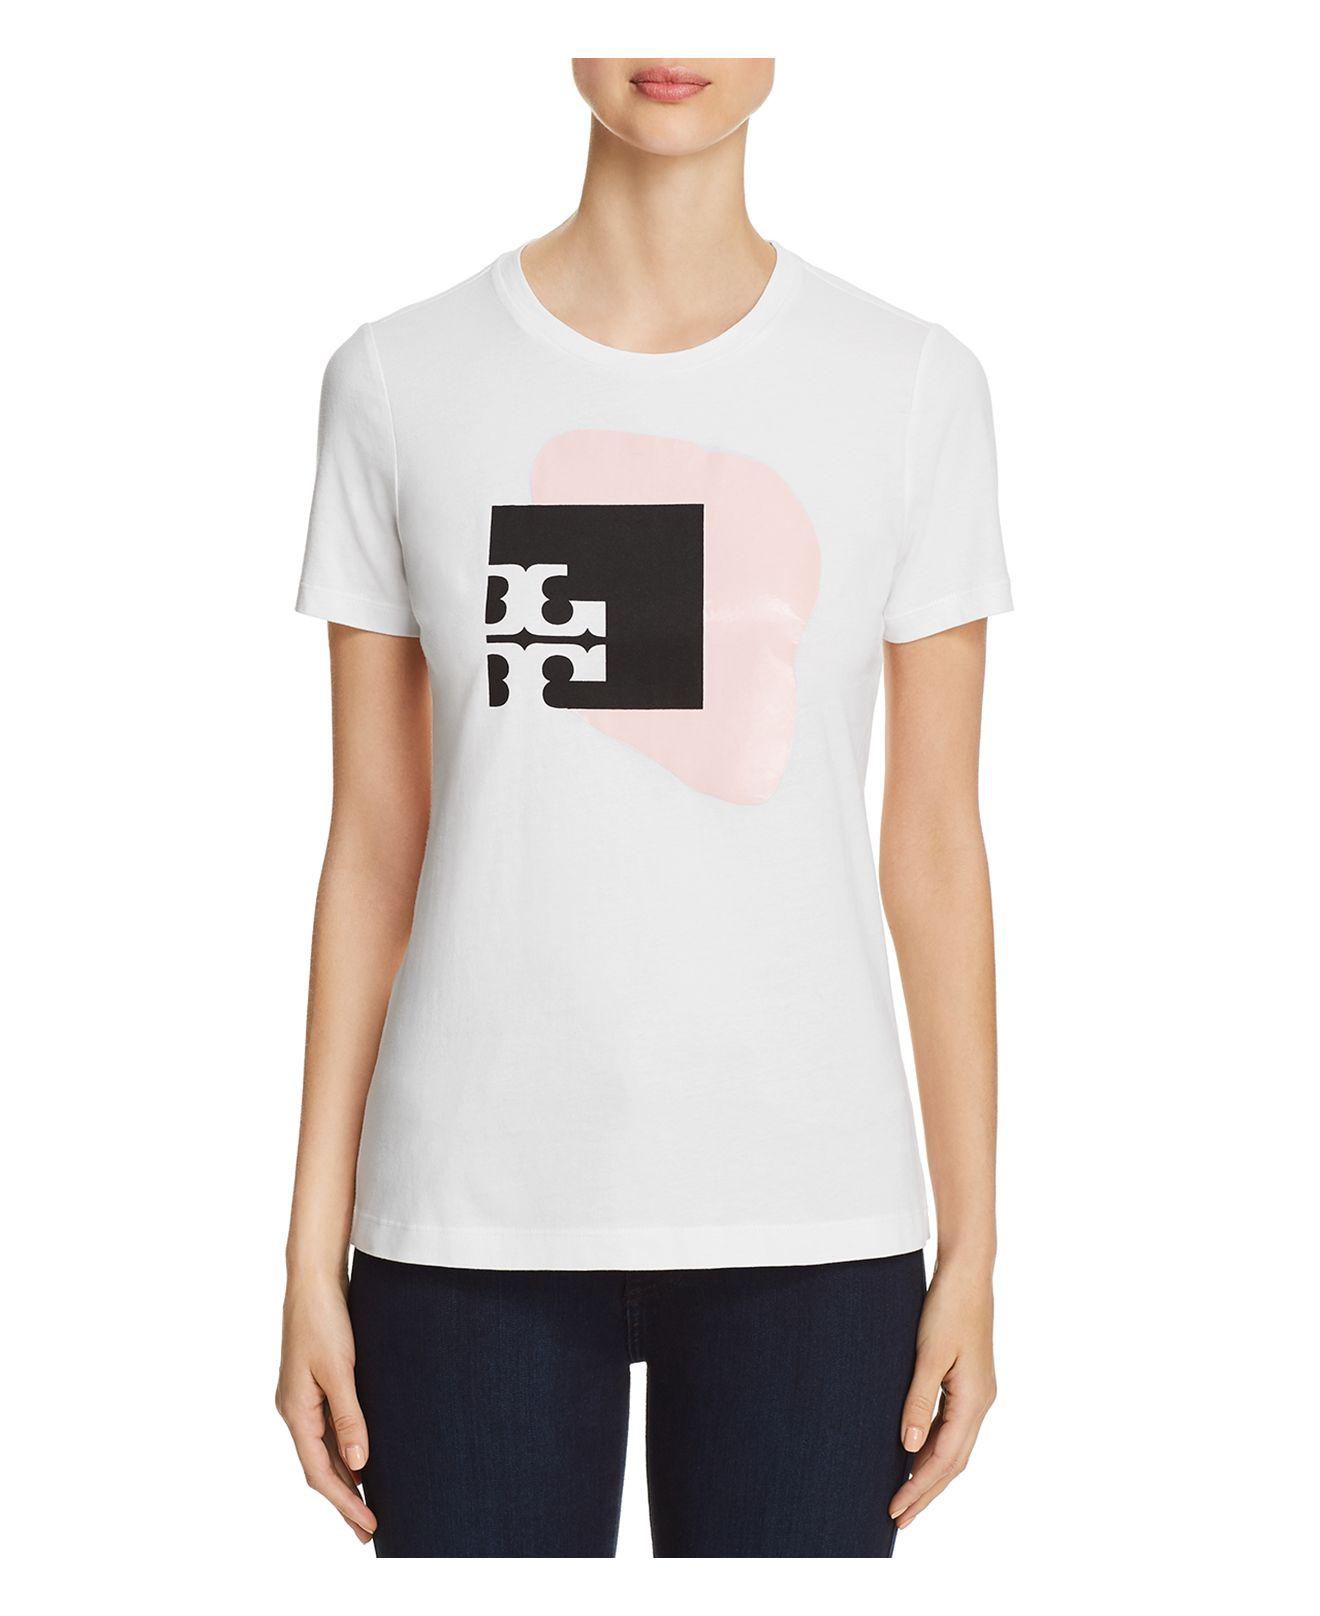 Lyst tory burch carly logo graphic tee in white for Tory burch t shirt